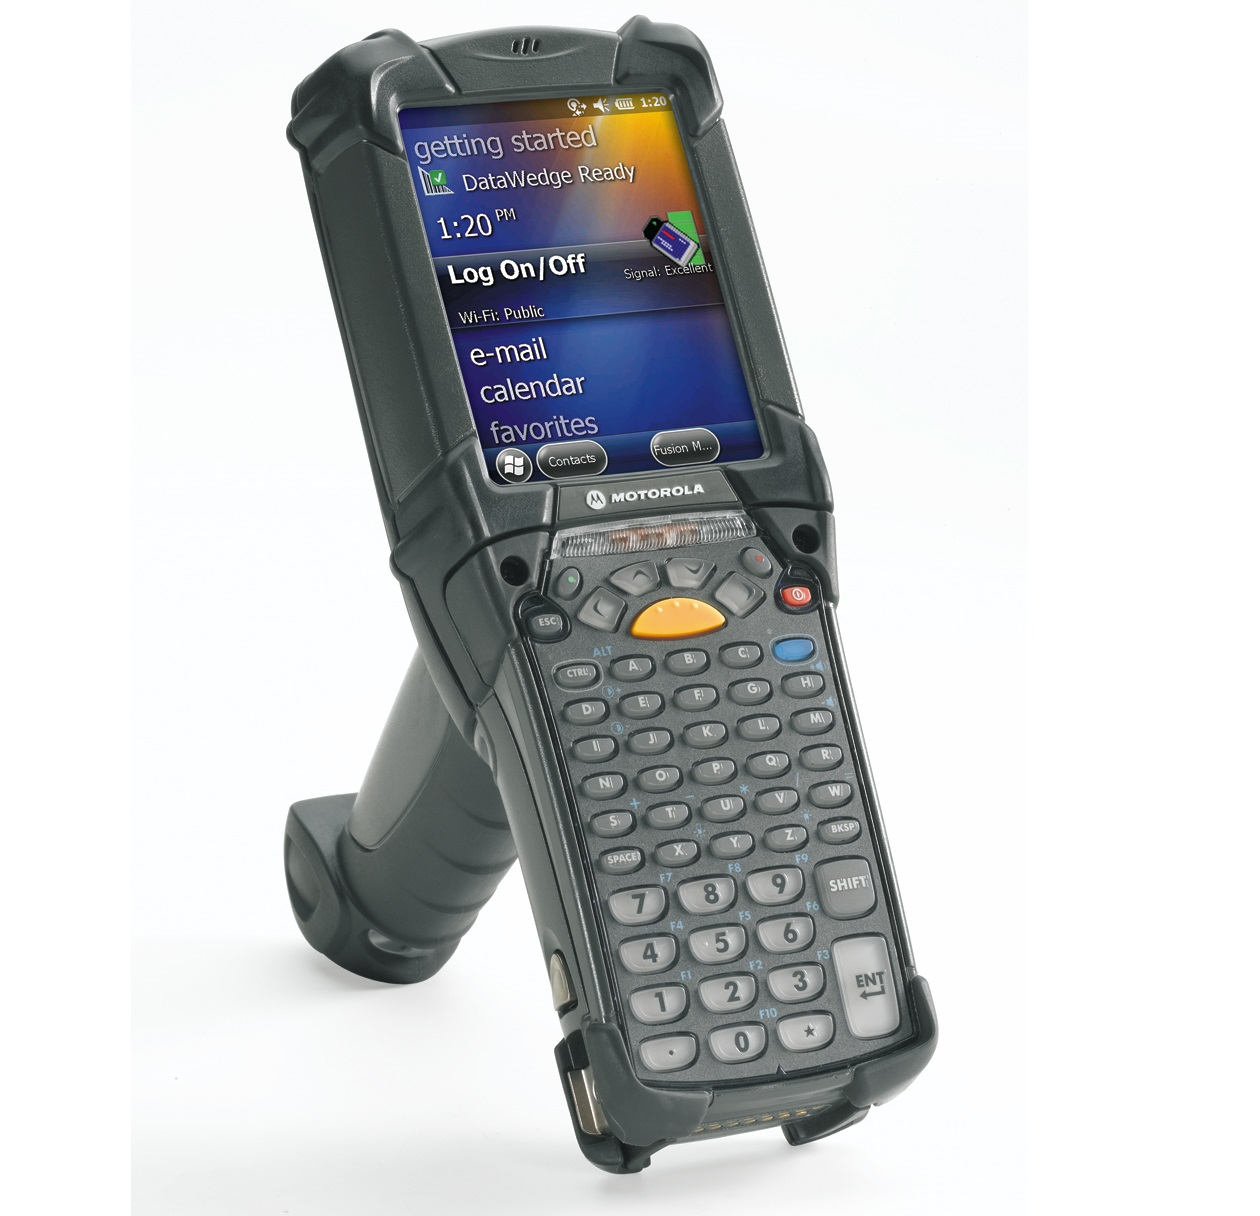 Motorola MC9200 Wireless Mobile Computer